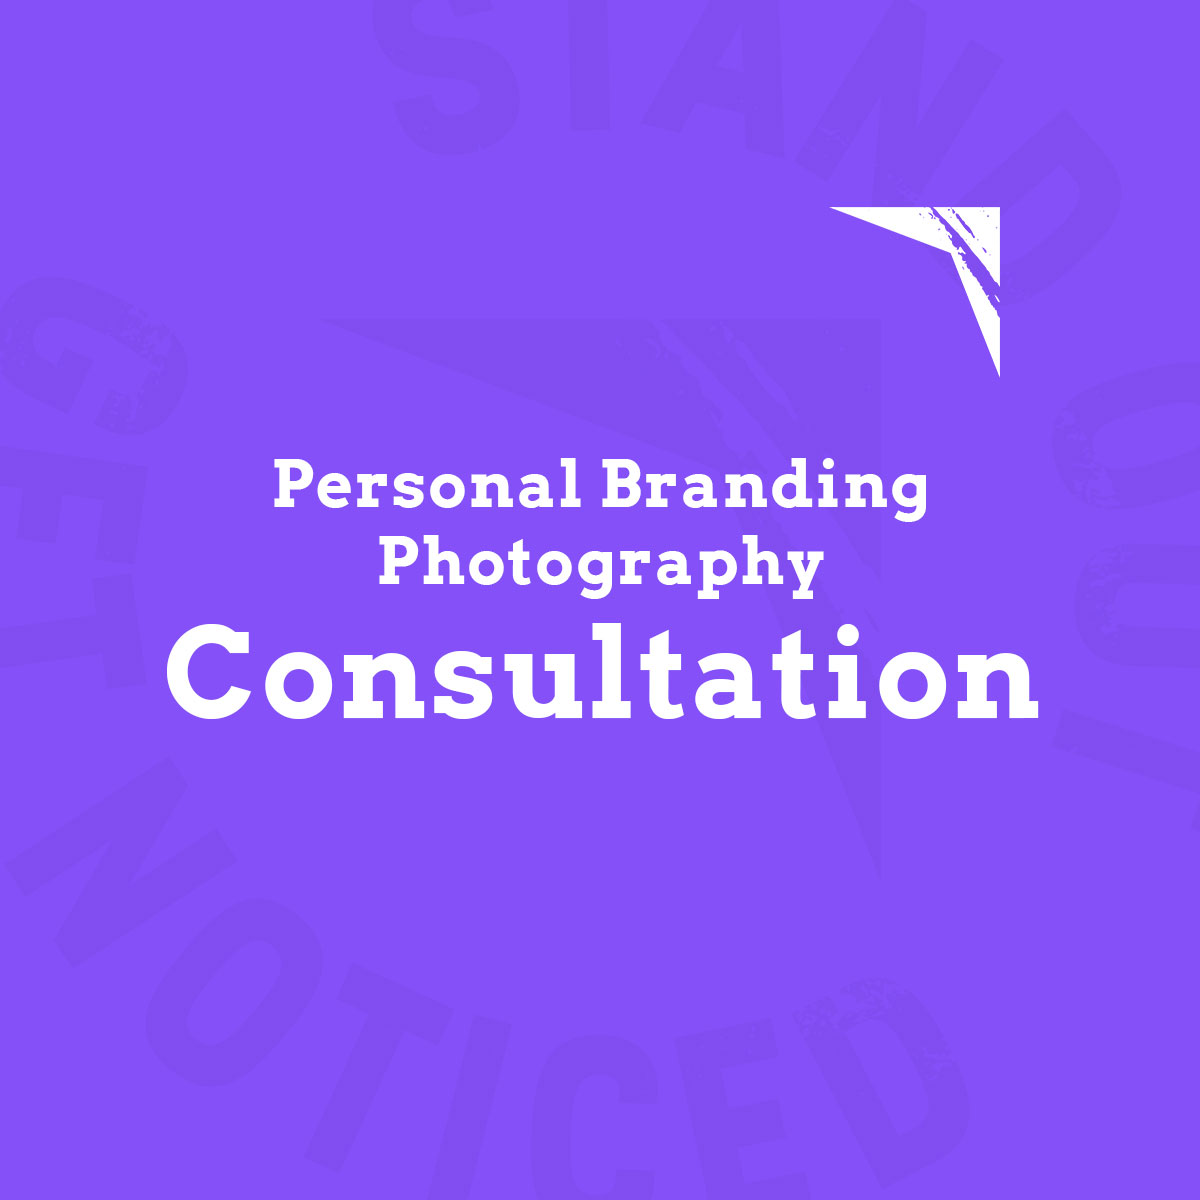 Personal Branding Photography Consultation